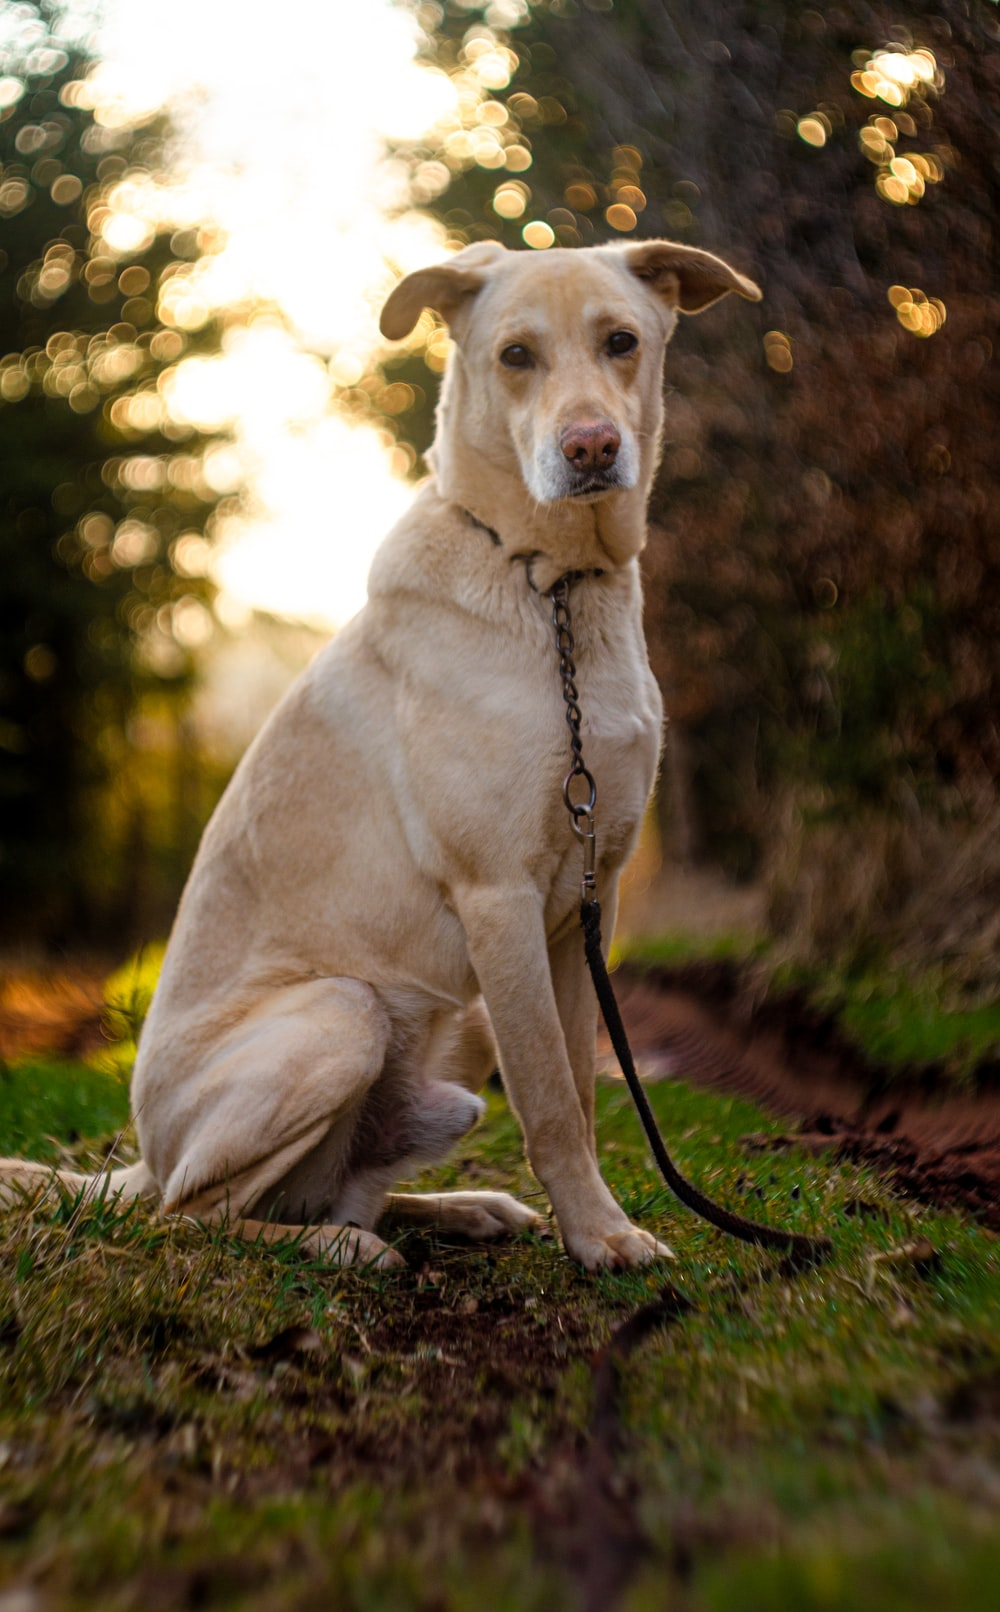 yellow labrador retriever with black leash sitting on grass field during daytime